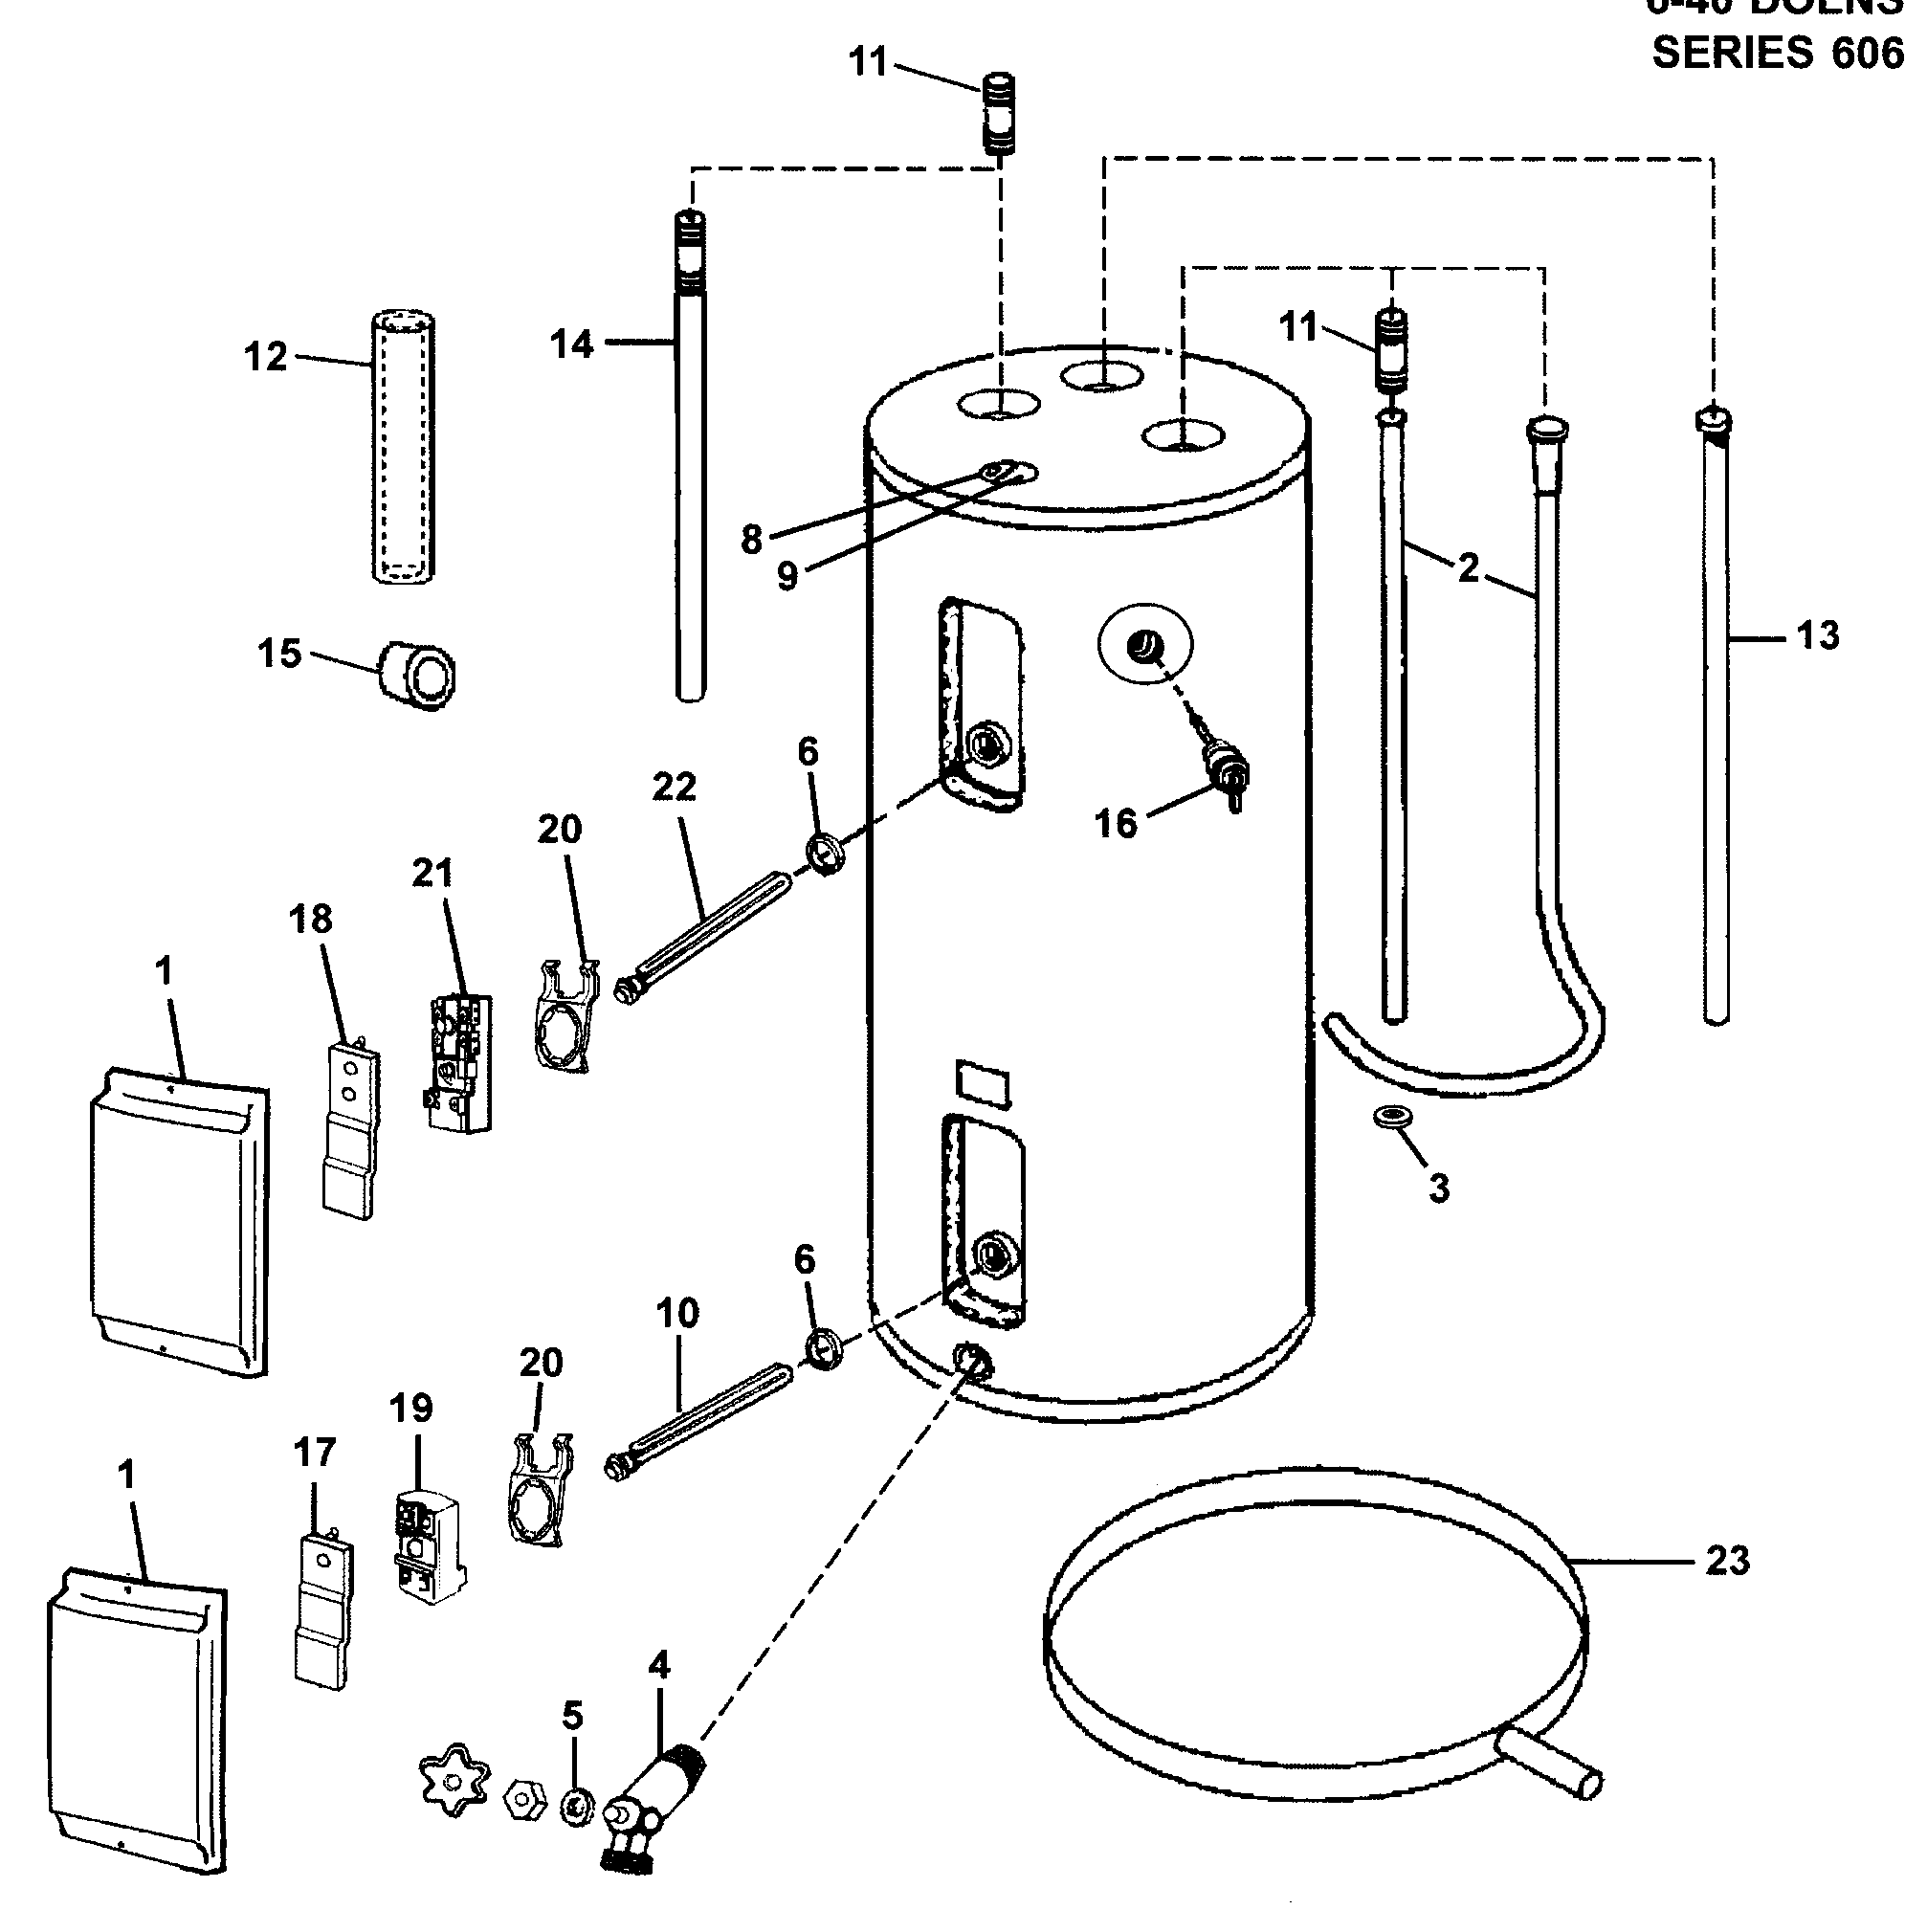 Top Heating Element + Water Heater + Wiring Diagram from cdn.statically.io